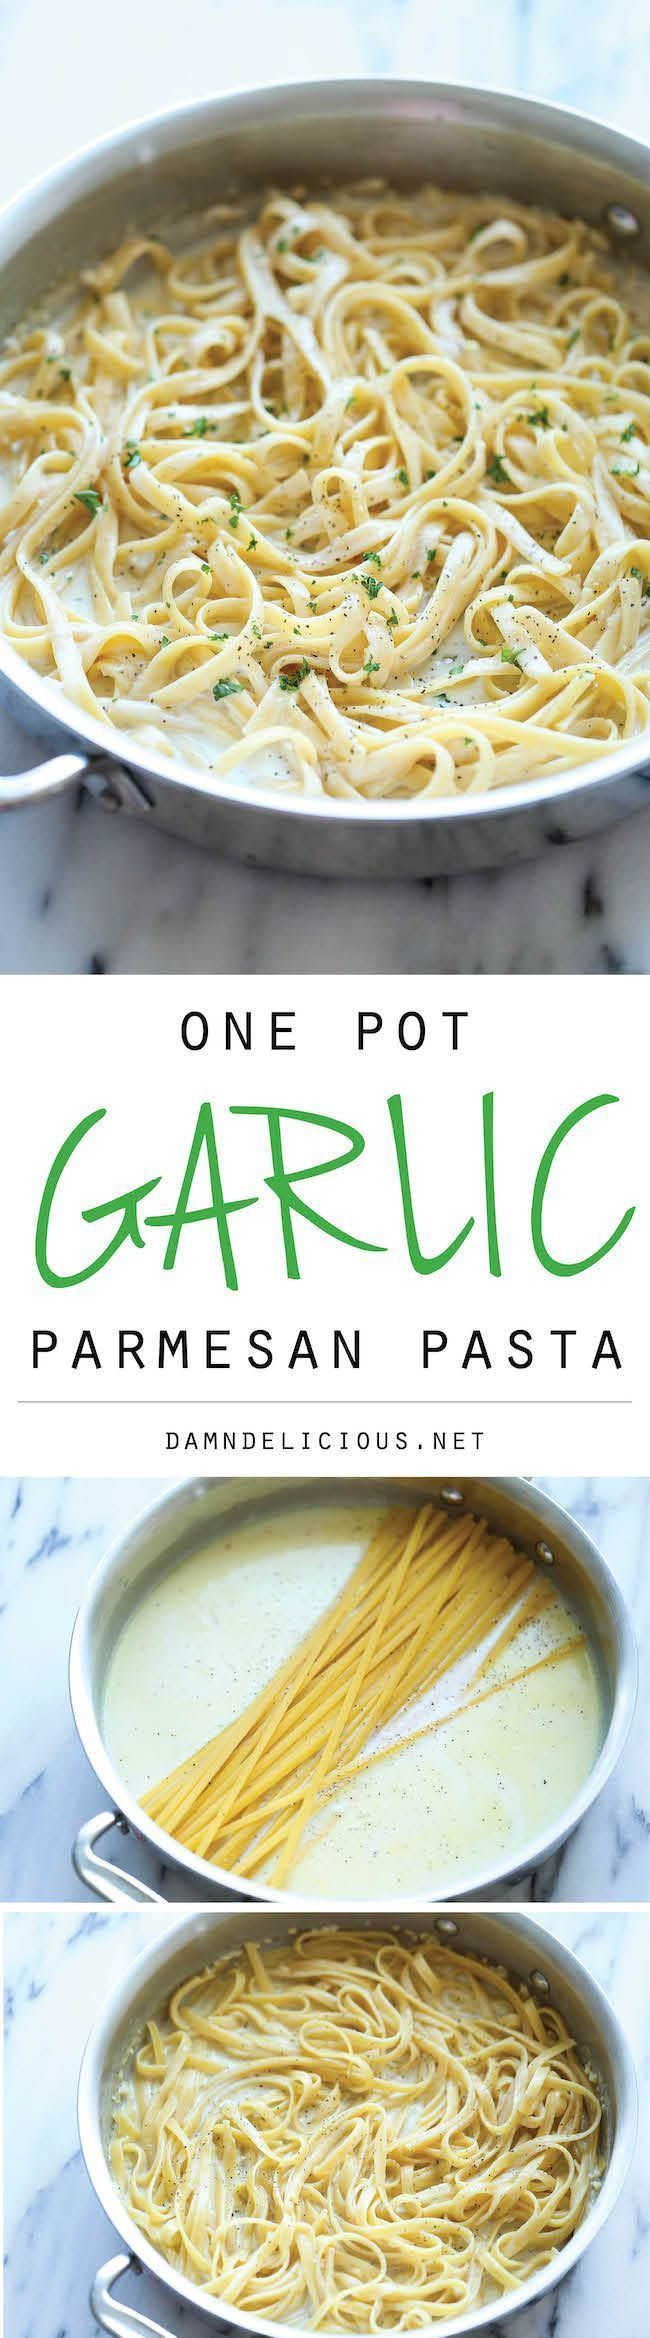 {Italy} One Pot Garlic Parmesan Pasta - The easiest and creamiest pasta made in a single pot - even the pasta gets cooked right in the pan! How easy is that?